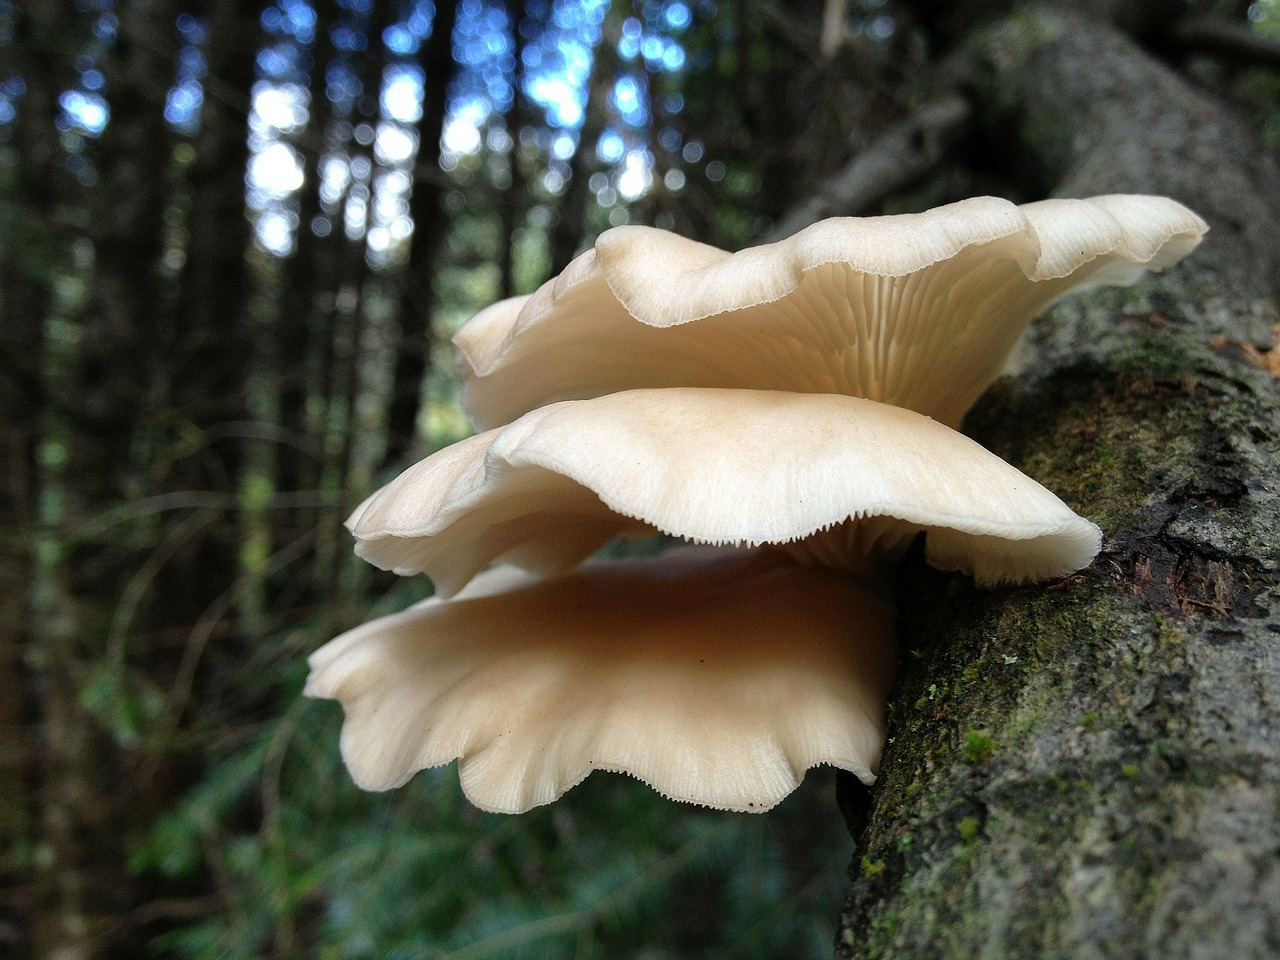 oyster-mushrooms-growing-on-tree